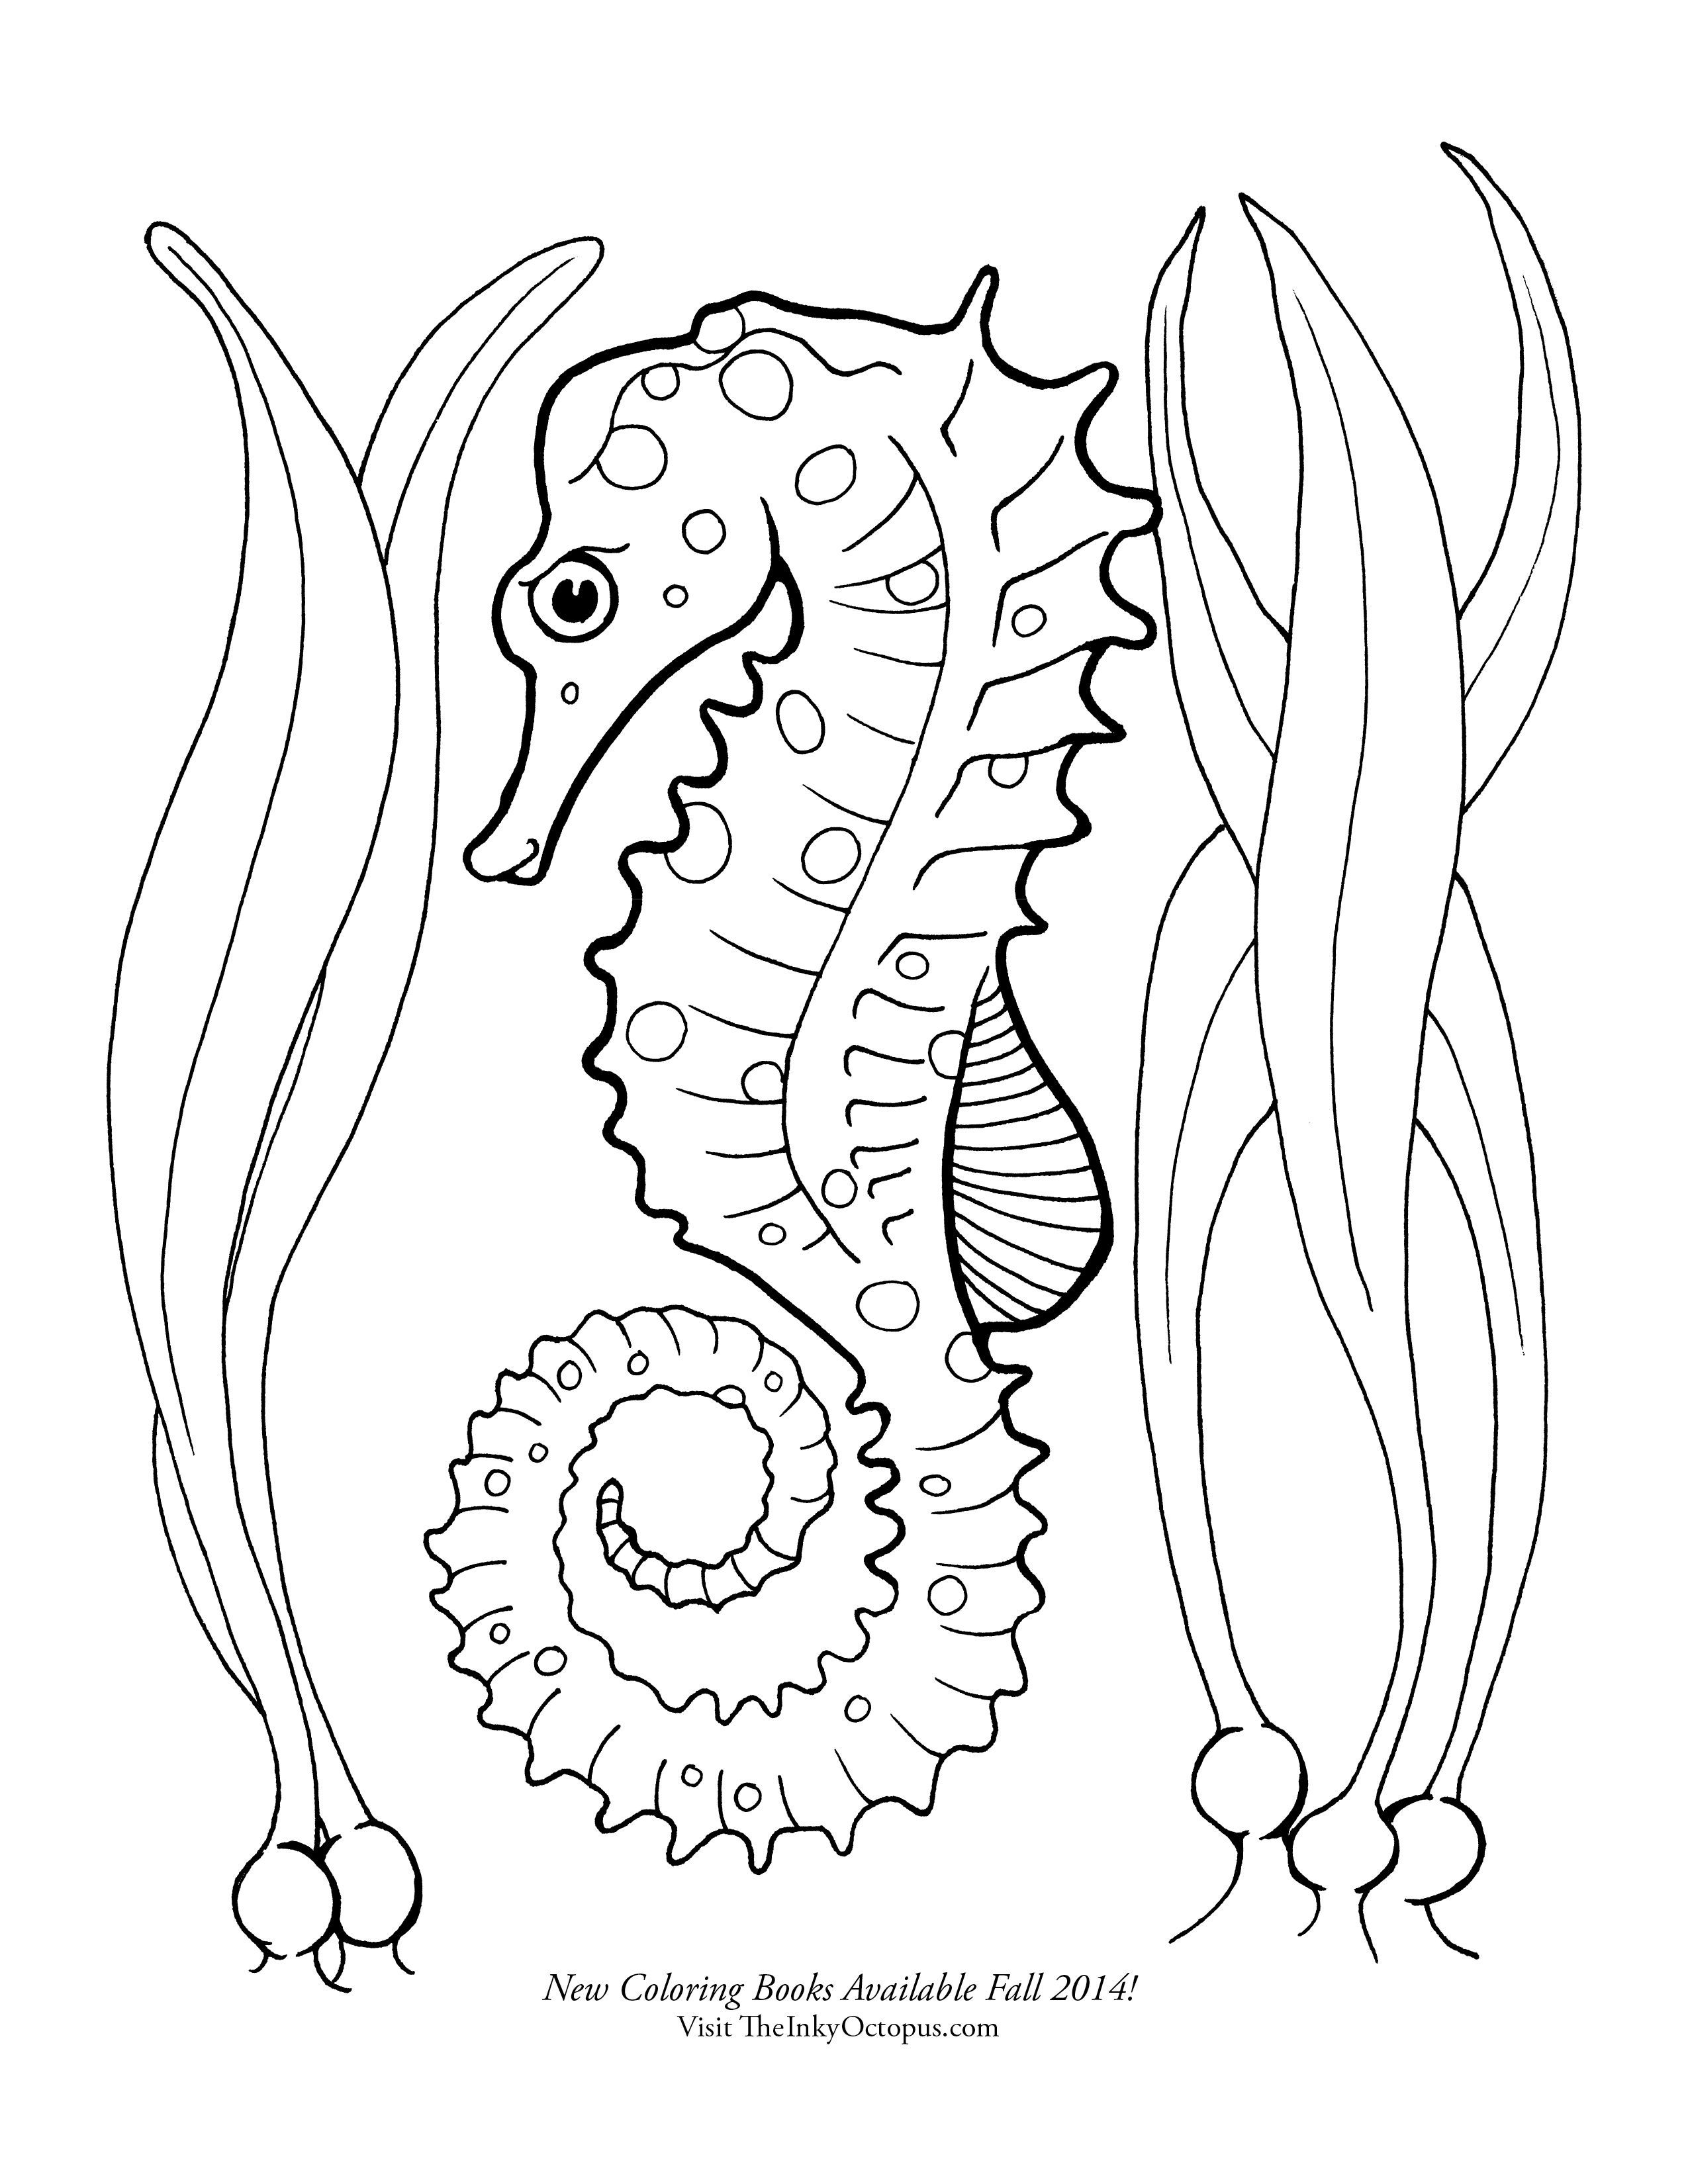 Pin By Amanda Mienie On Teken Prente In 2021 Horse Coloring Pages Butterfly Coloring Page Seahorse Coloring Page